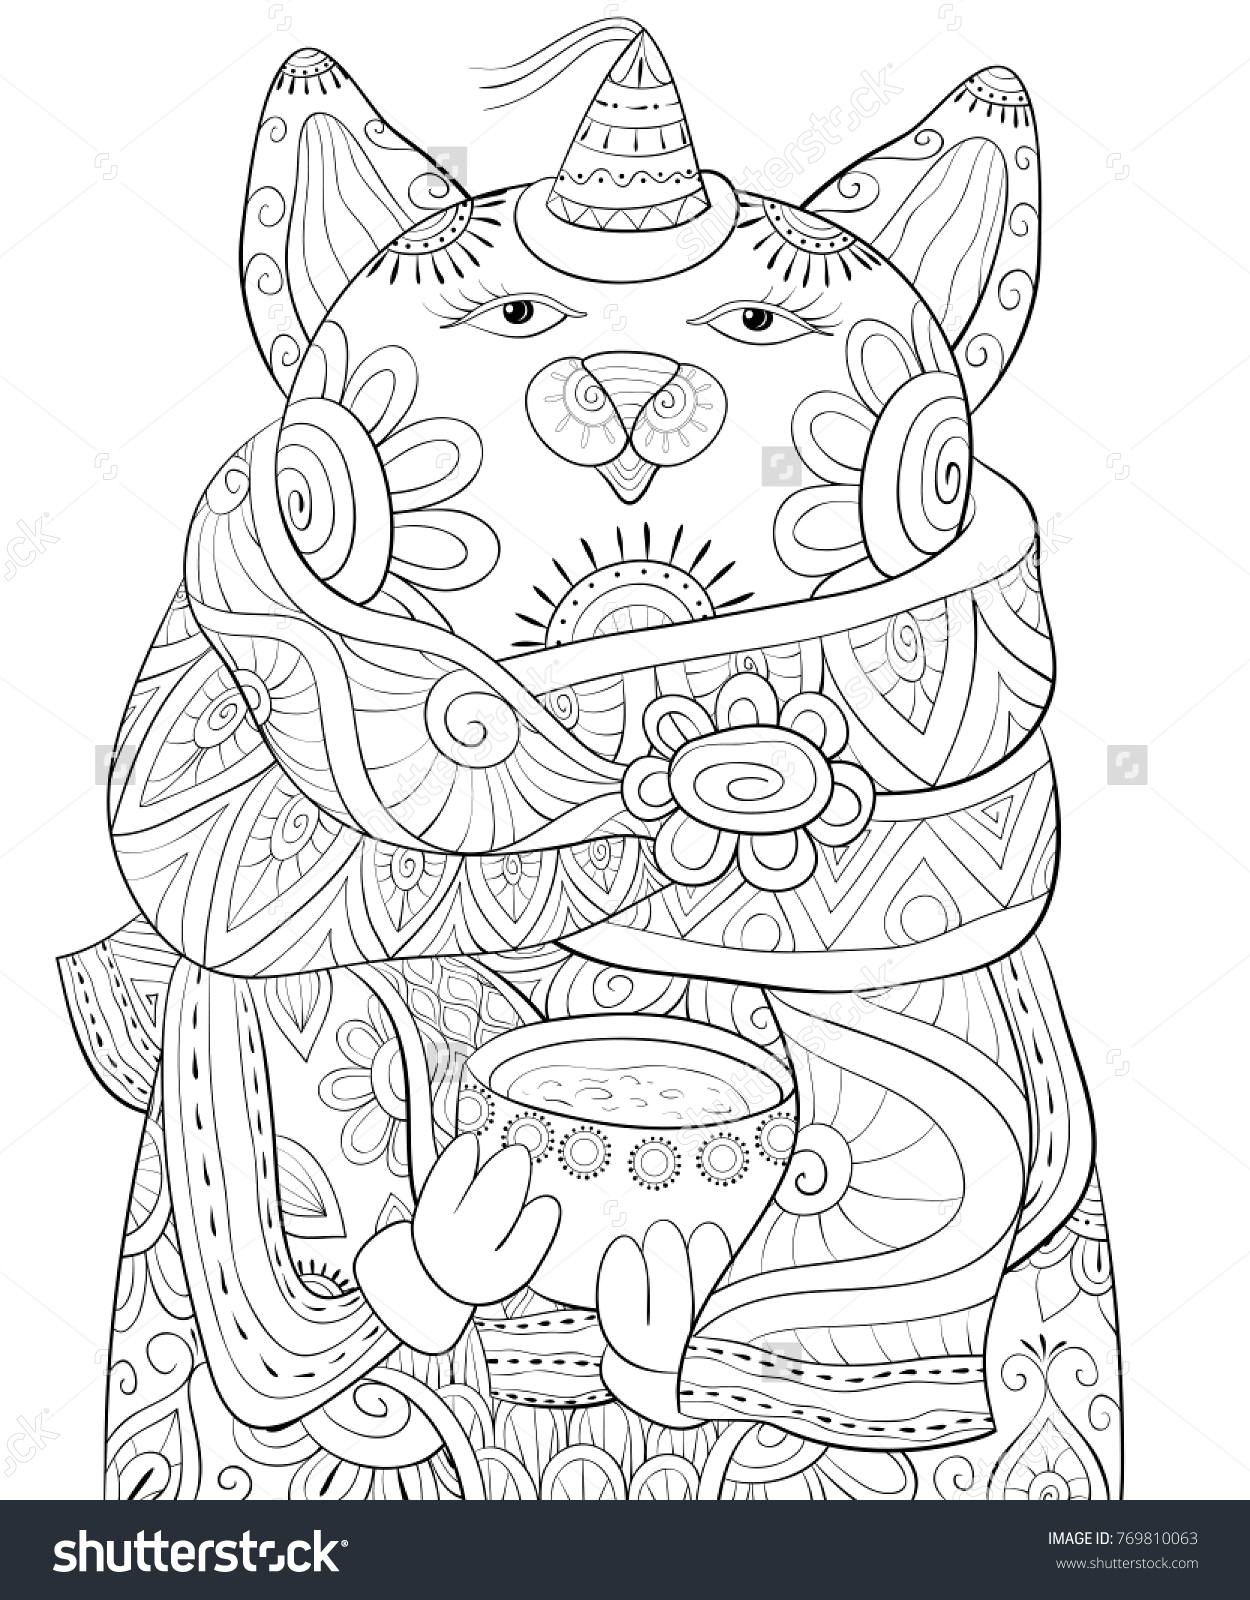 Adult Coloring Pagebook Cute Christmas Cat Stock Vector